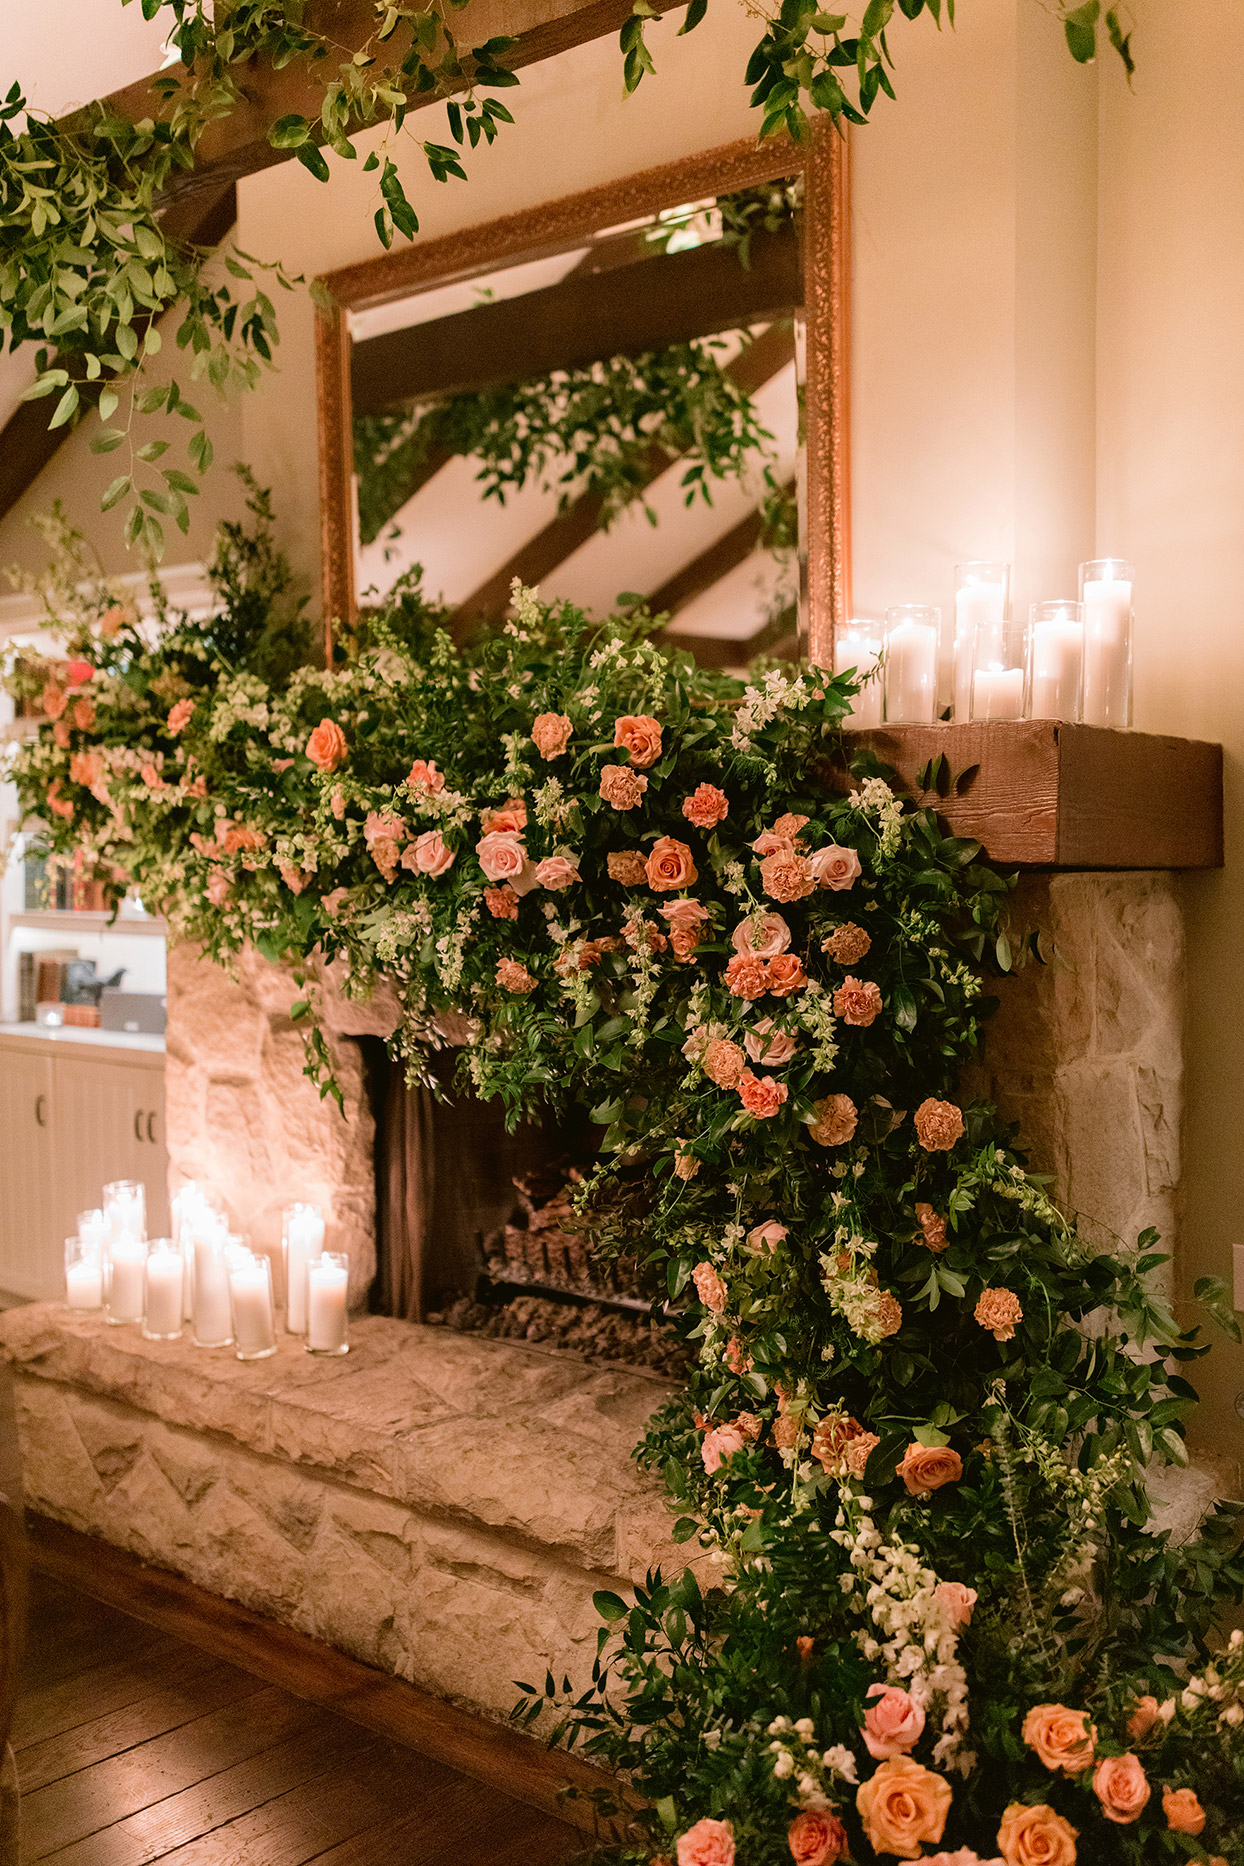 wedding fireplace with elaborate floral garland and candles